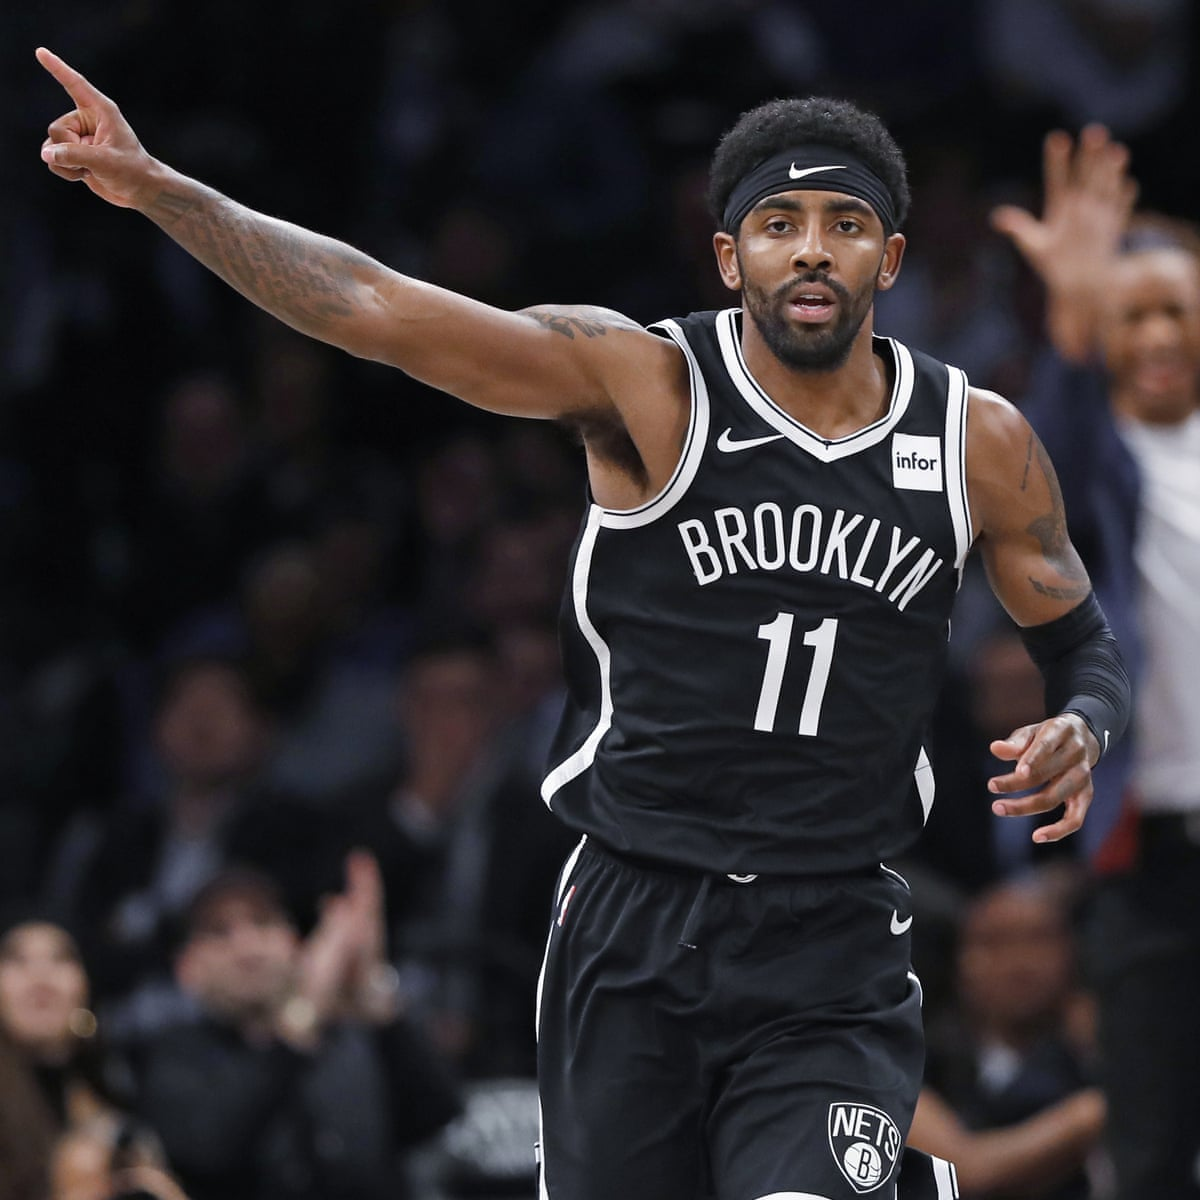 Kyrie Irving goes for 50 in Nets debut but misses winner as Wolves escape |  NBA | The Guardian